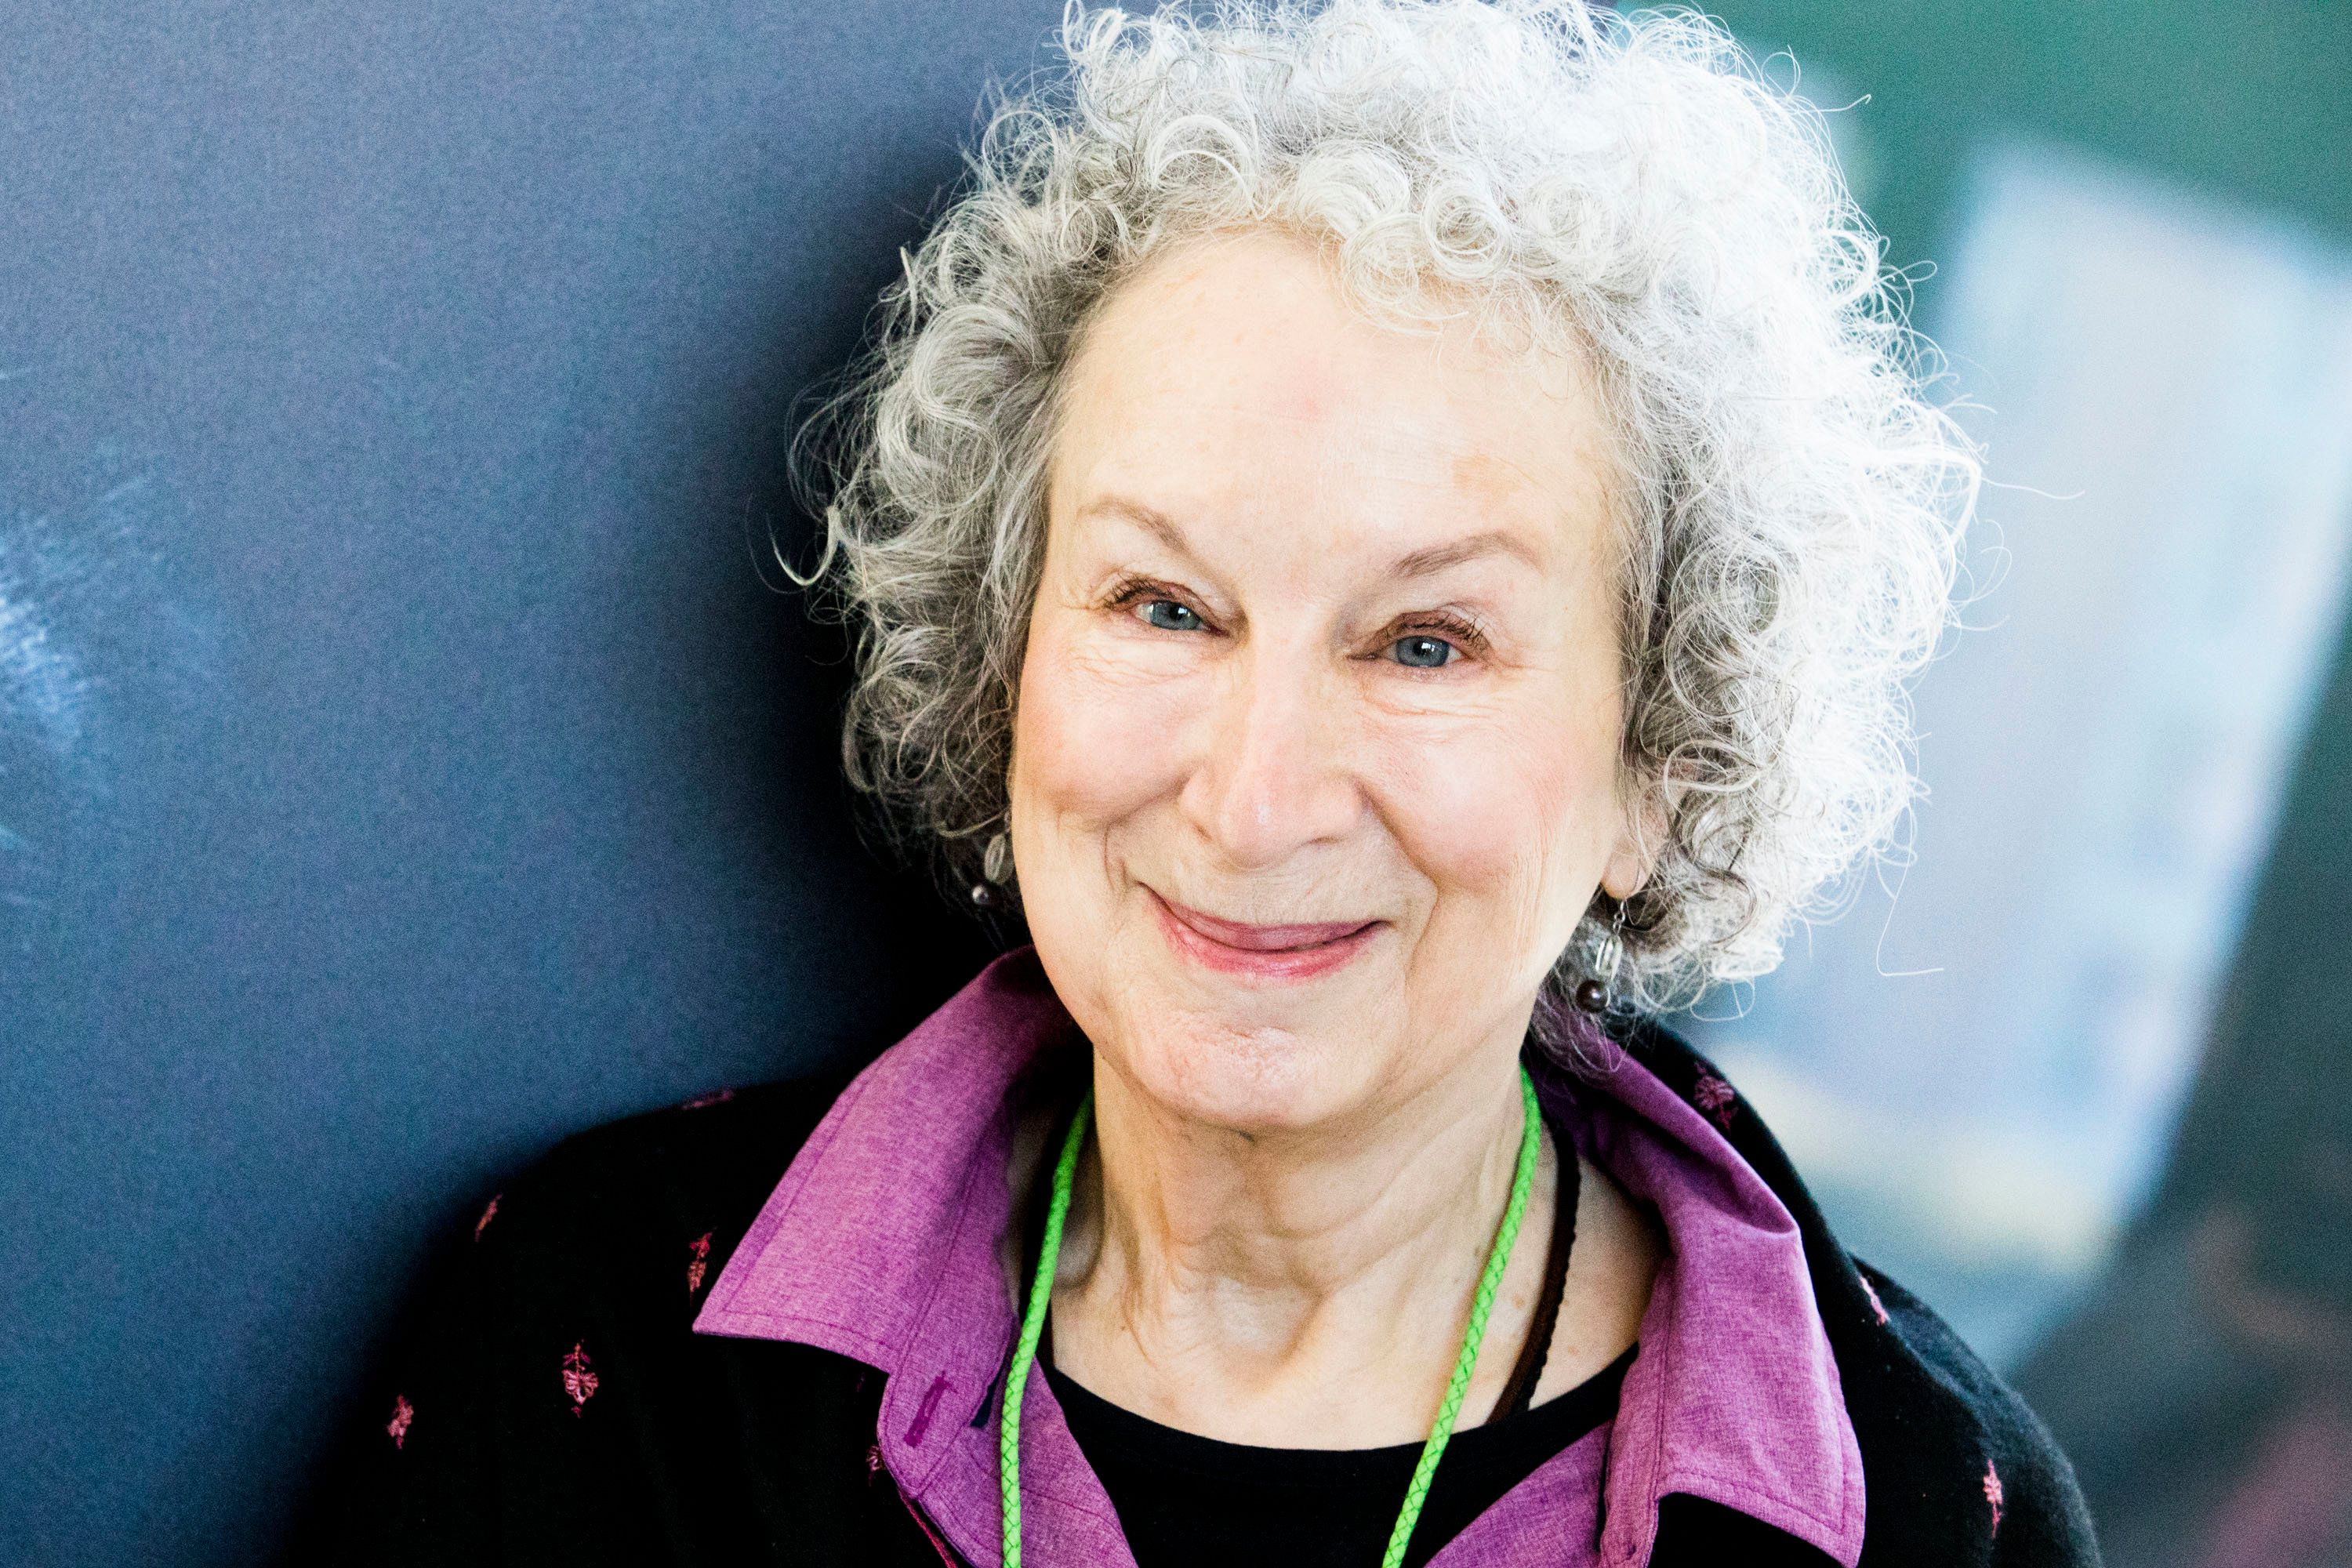 MILAN, ITALY - DECEMBER 06:  Canadian poet, novelist, literary critic, essayist, inventor, and environmental activist Margaret Atwood poses for portrait session at Noir In Festival on December 6, 2017 in Milan, Italy.  (Photo by Rosdiana Ciaravolo/Getty Images)